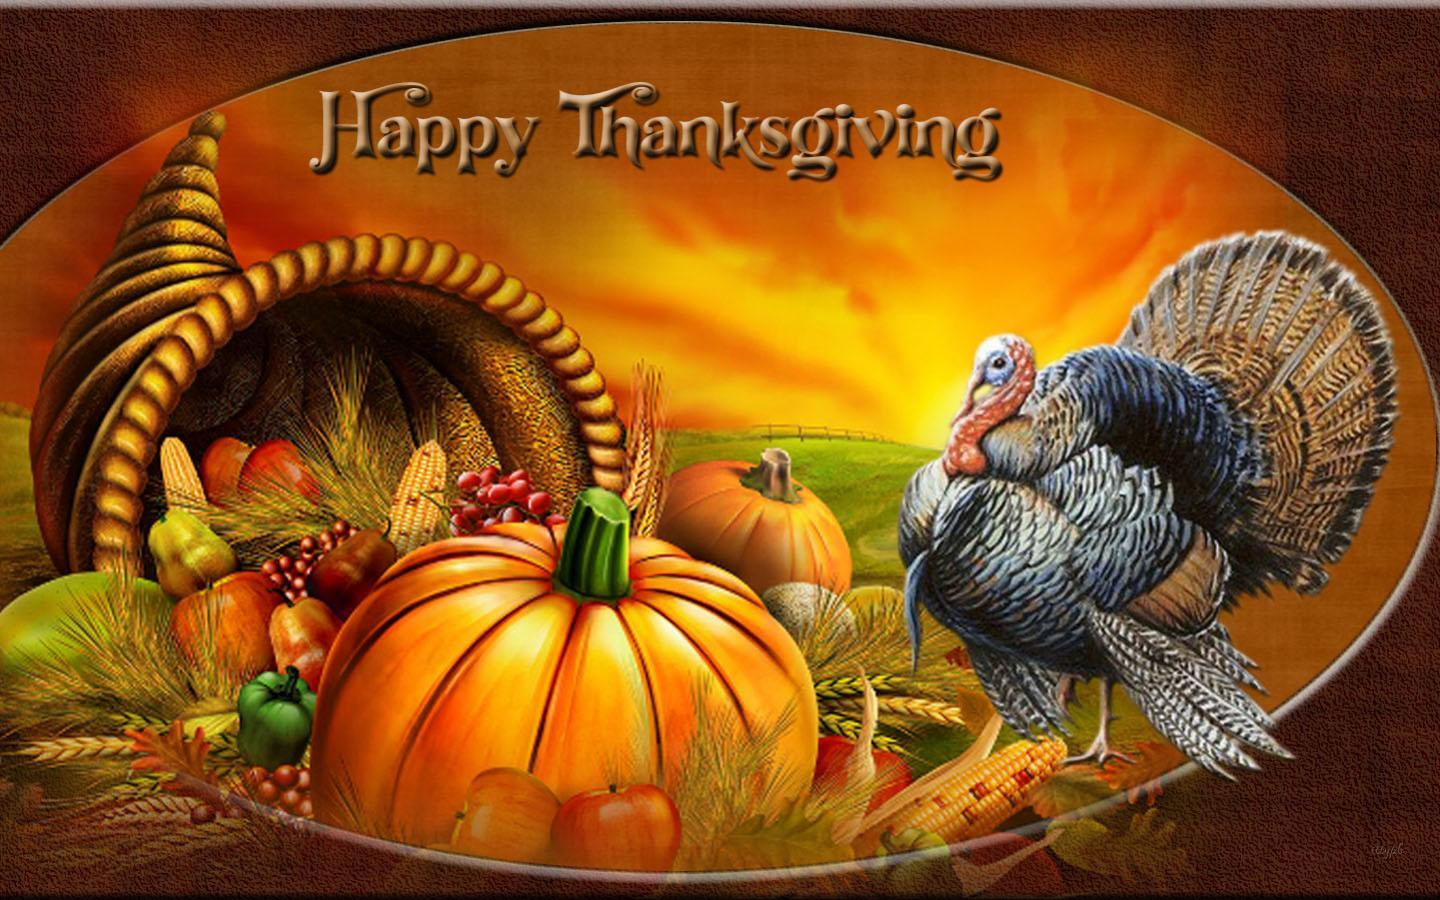 Happy Thanksgiving Wallpapers - Android Apps on Google Play